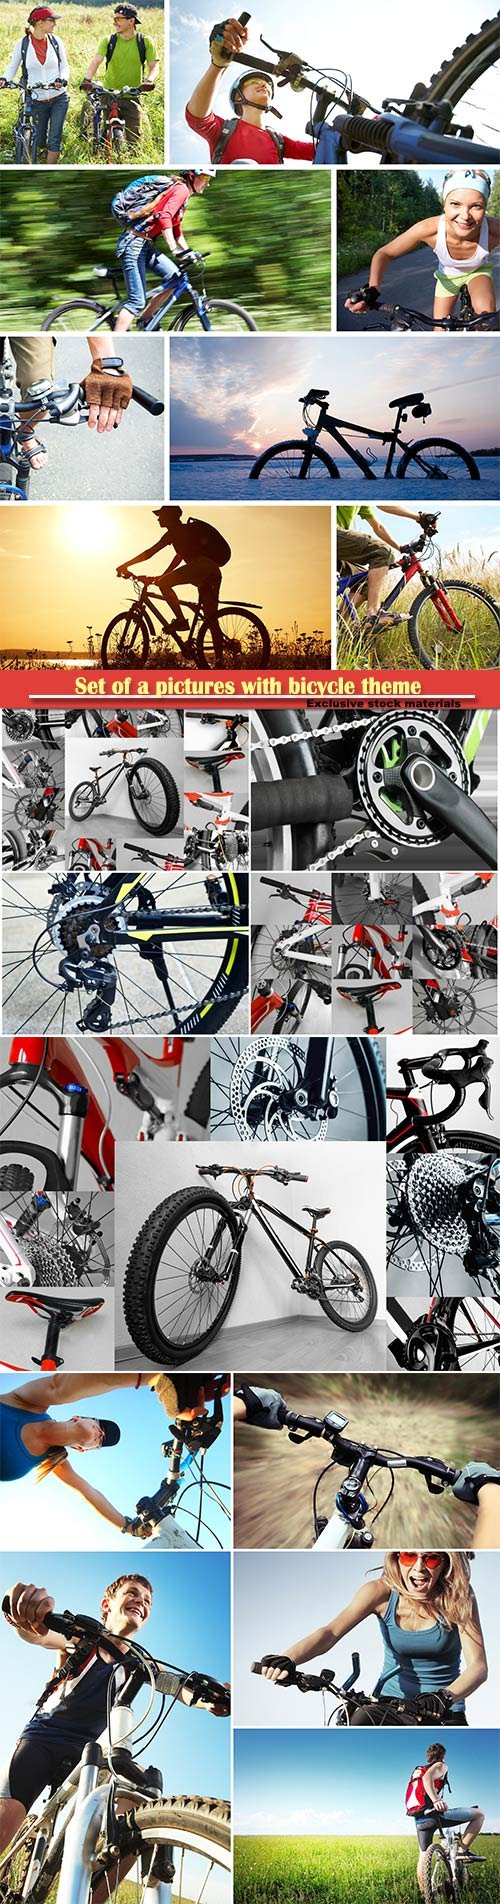 Set of a pictures with bicycle theme, bicycle, wheel, handlebar, saddle, gear, chain